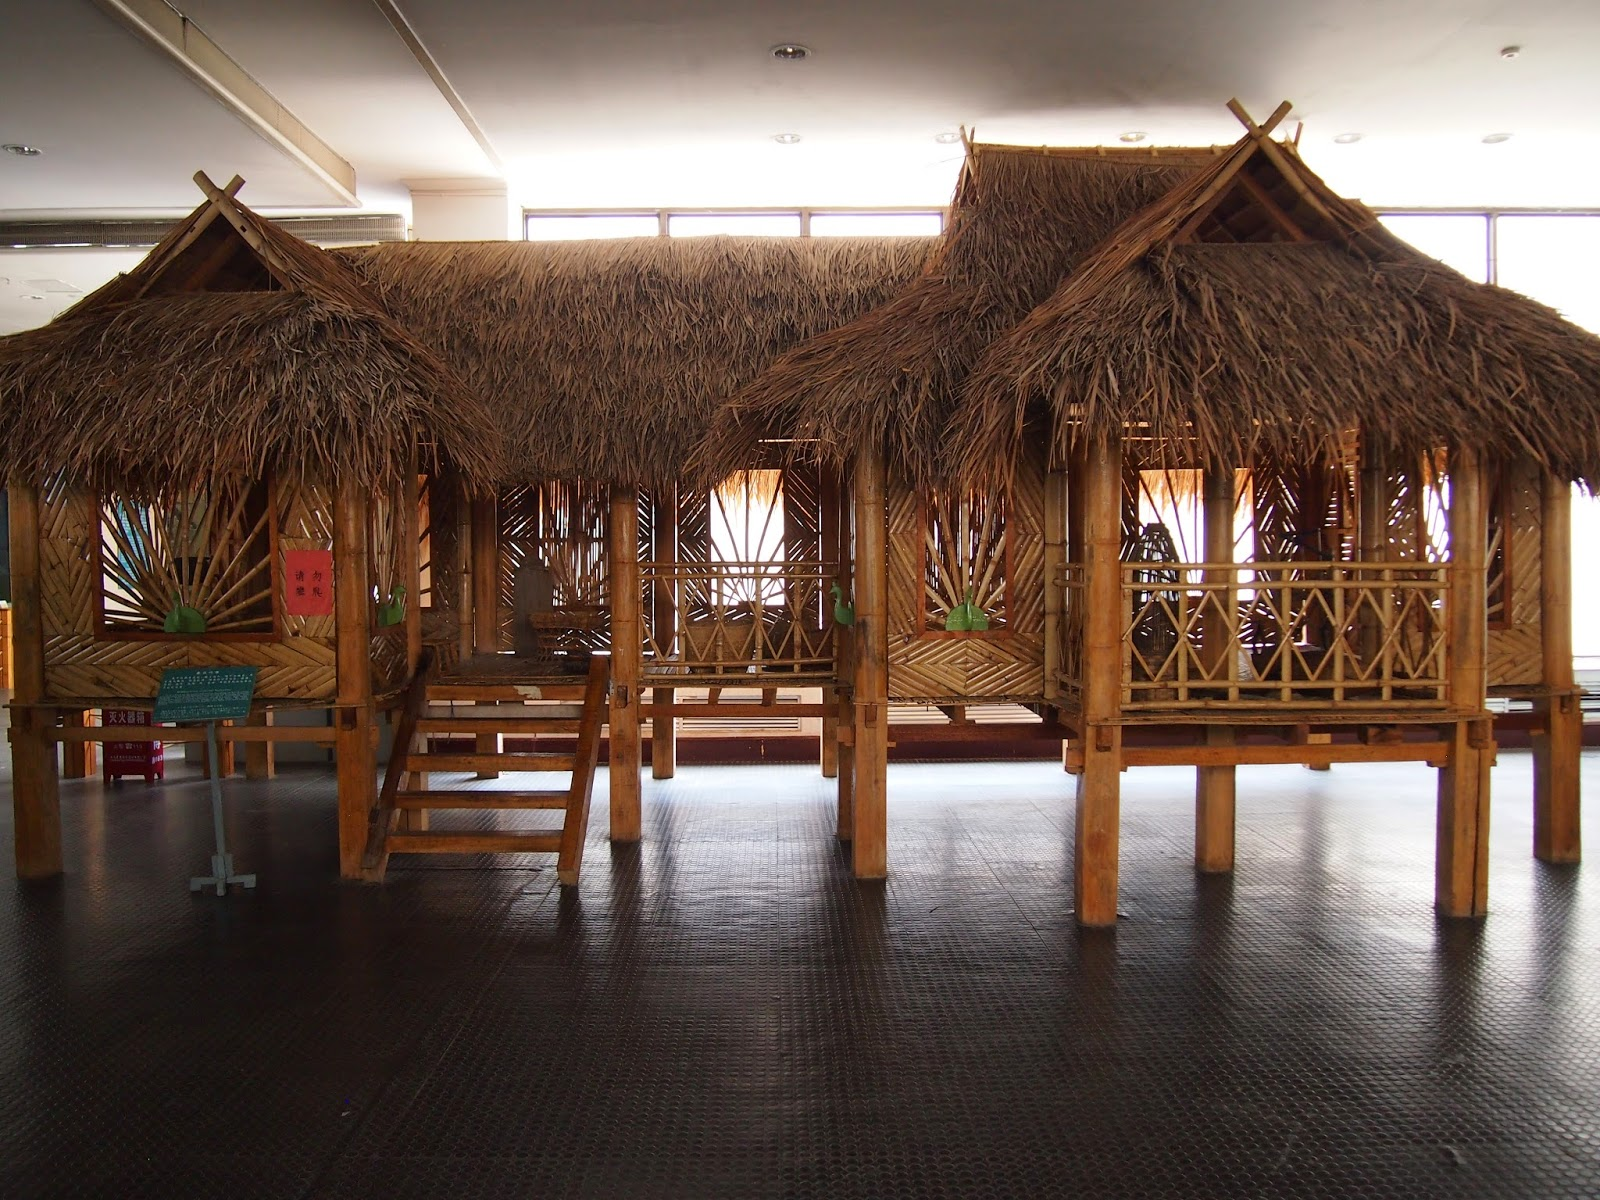 A model of a bamboo house in the Yunnan Nationalities Museum in Kunming, China